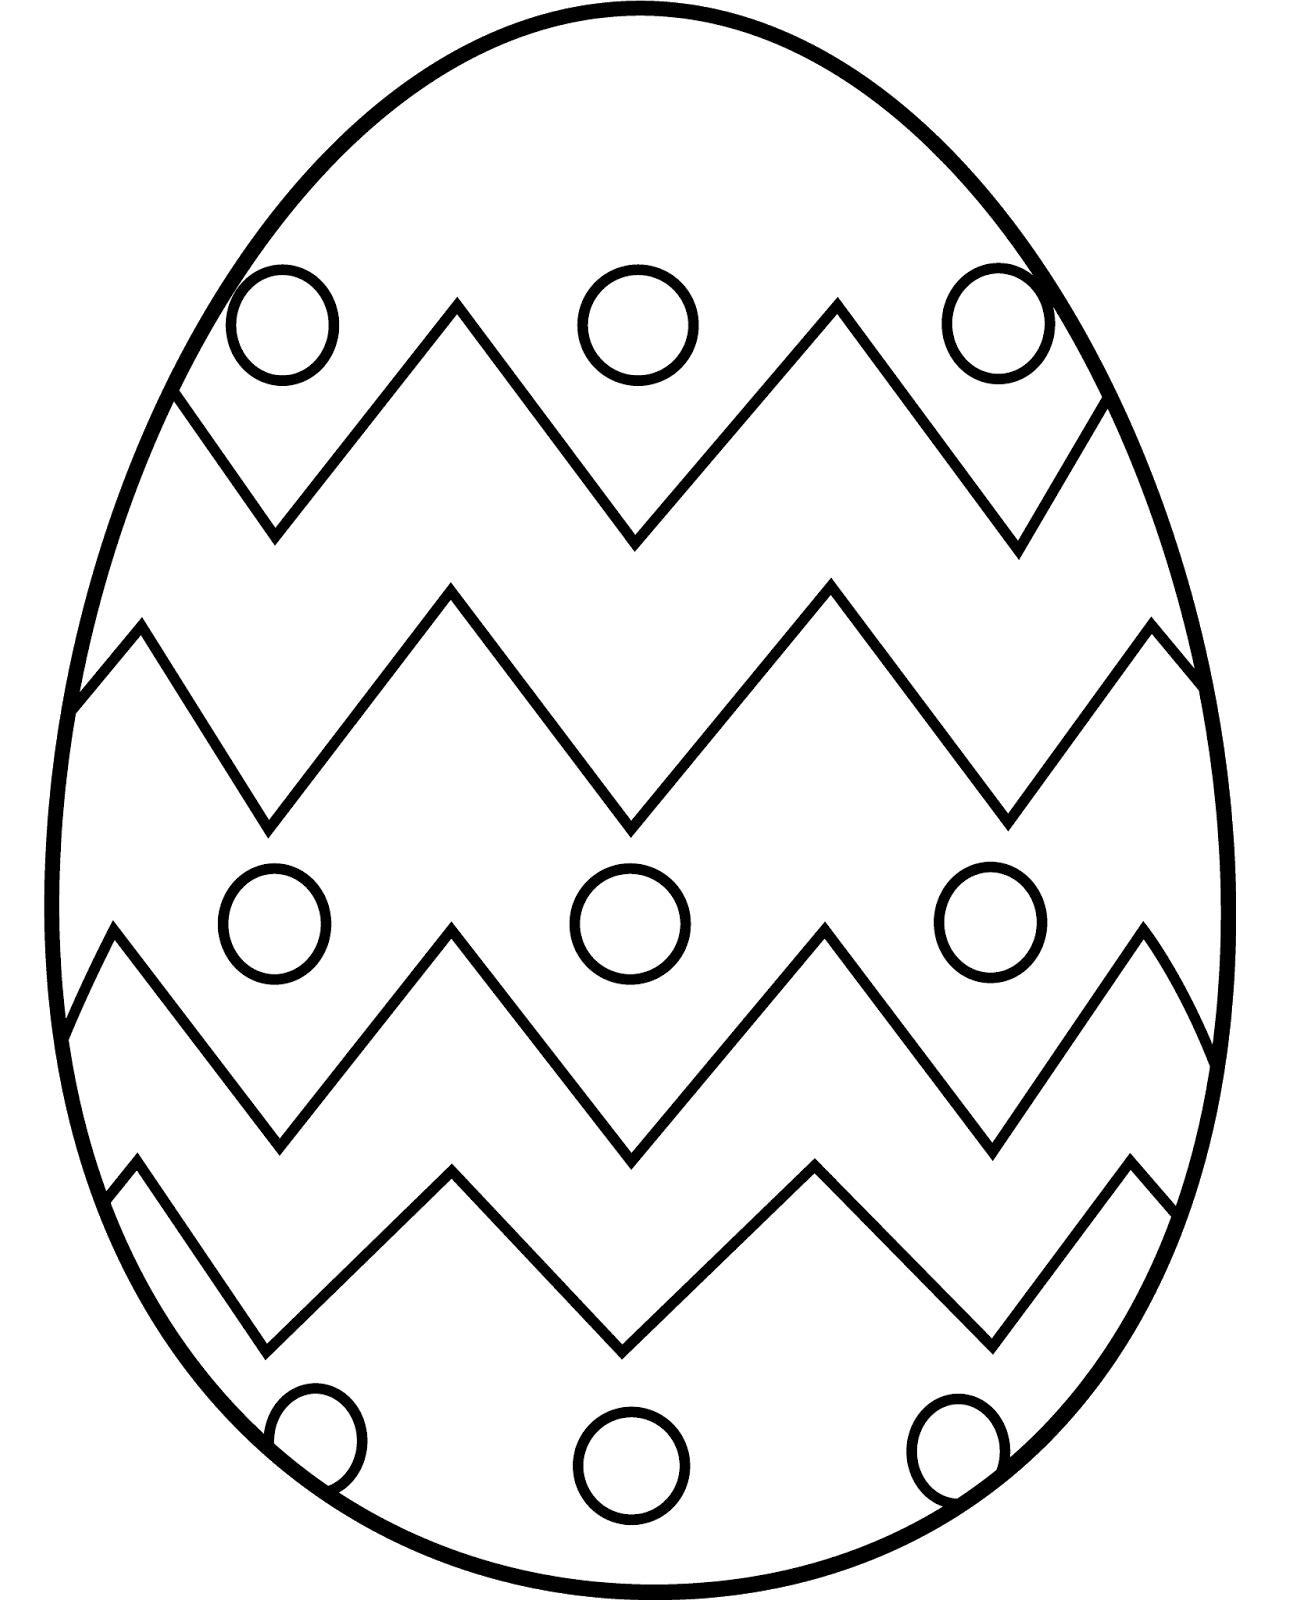 Easter Colouring Pages Easter Egg Coloring Pages Easter Coloring Sheets Easter Coloring Pictures